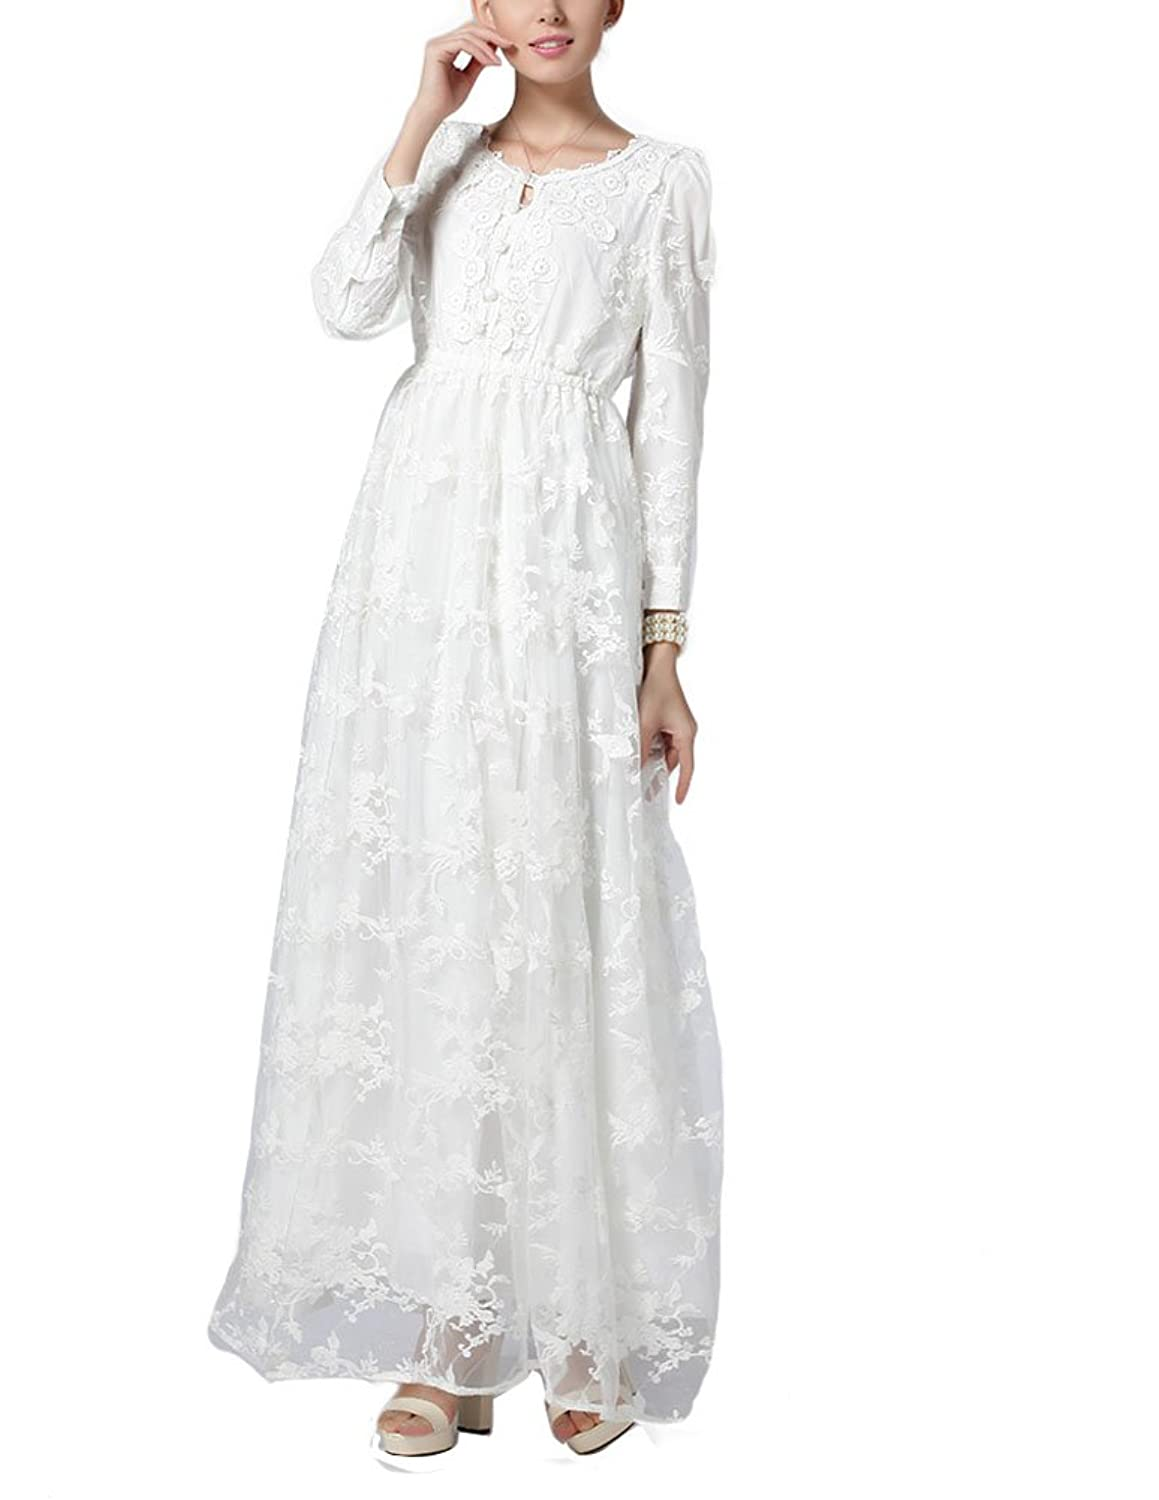 1960s Style Dresses- Retro Inspired Fashion Three Layers Crochet Embroidery Craft Lace Wedding Dress LYQ0156 $49.99 AT vintagedancer.com